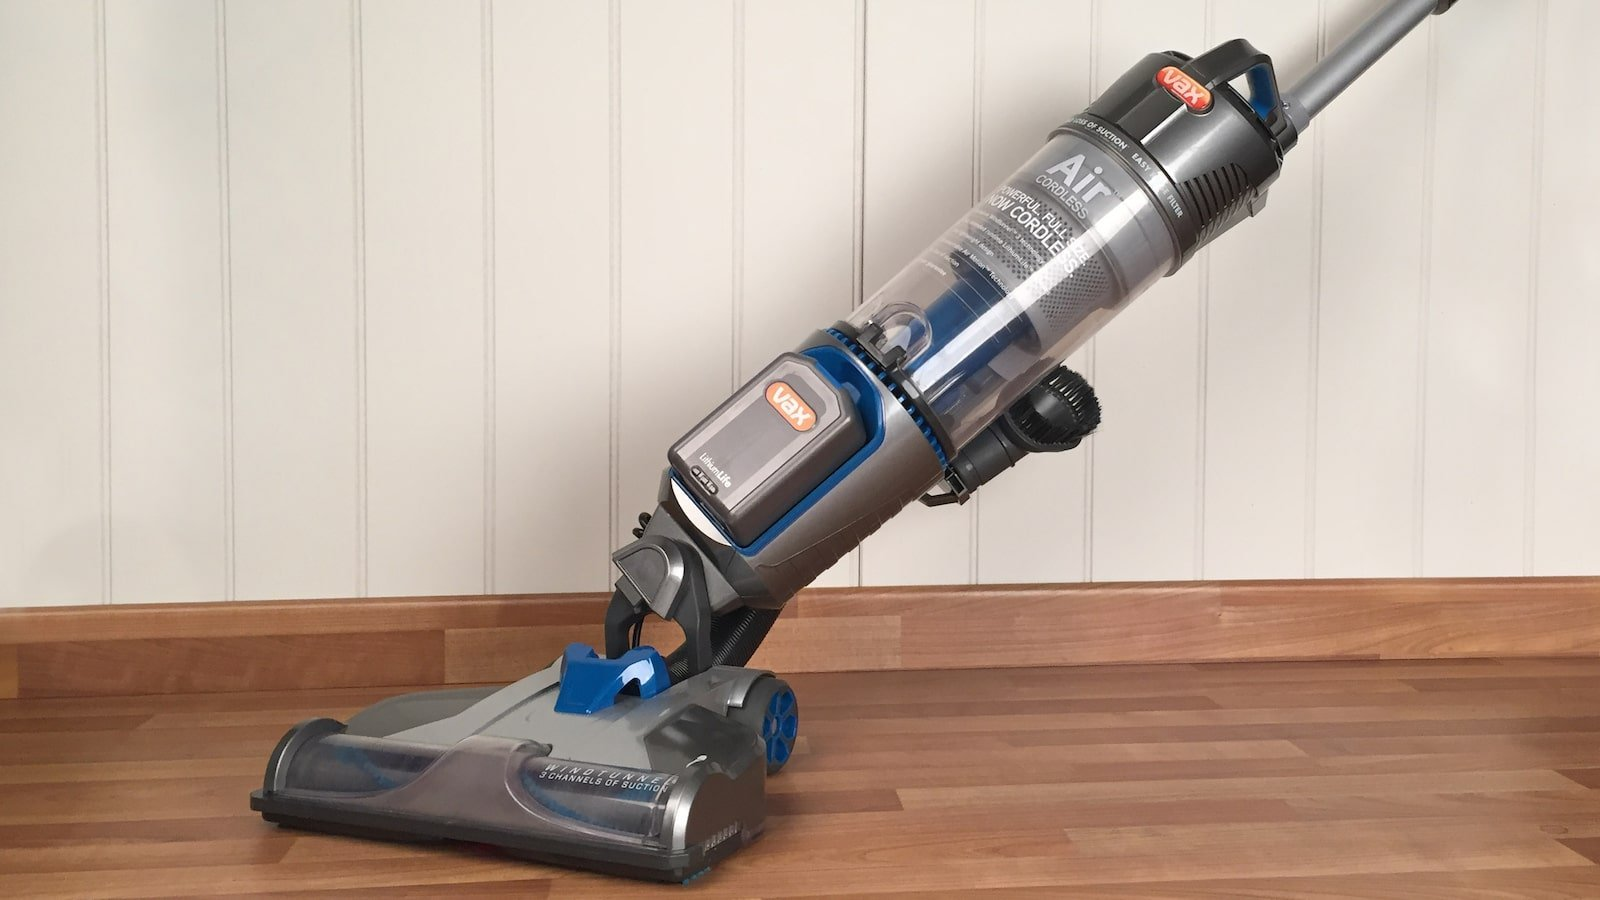 https://devices4home.com/wp-content/uploads/2018/10/Upright-vacuums.jpg